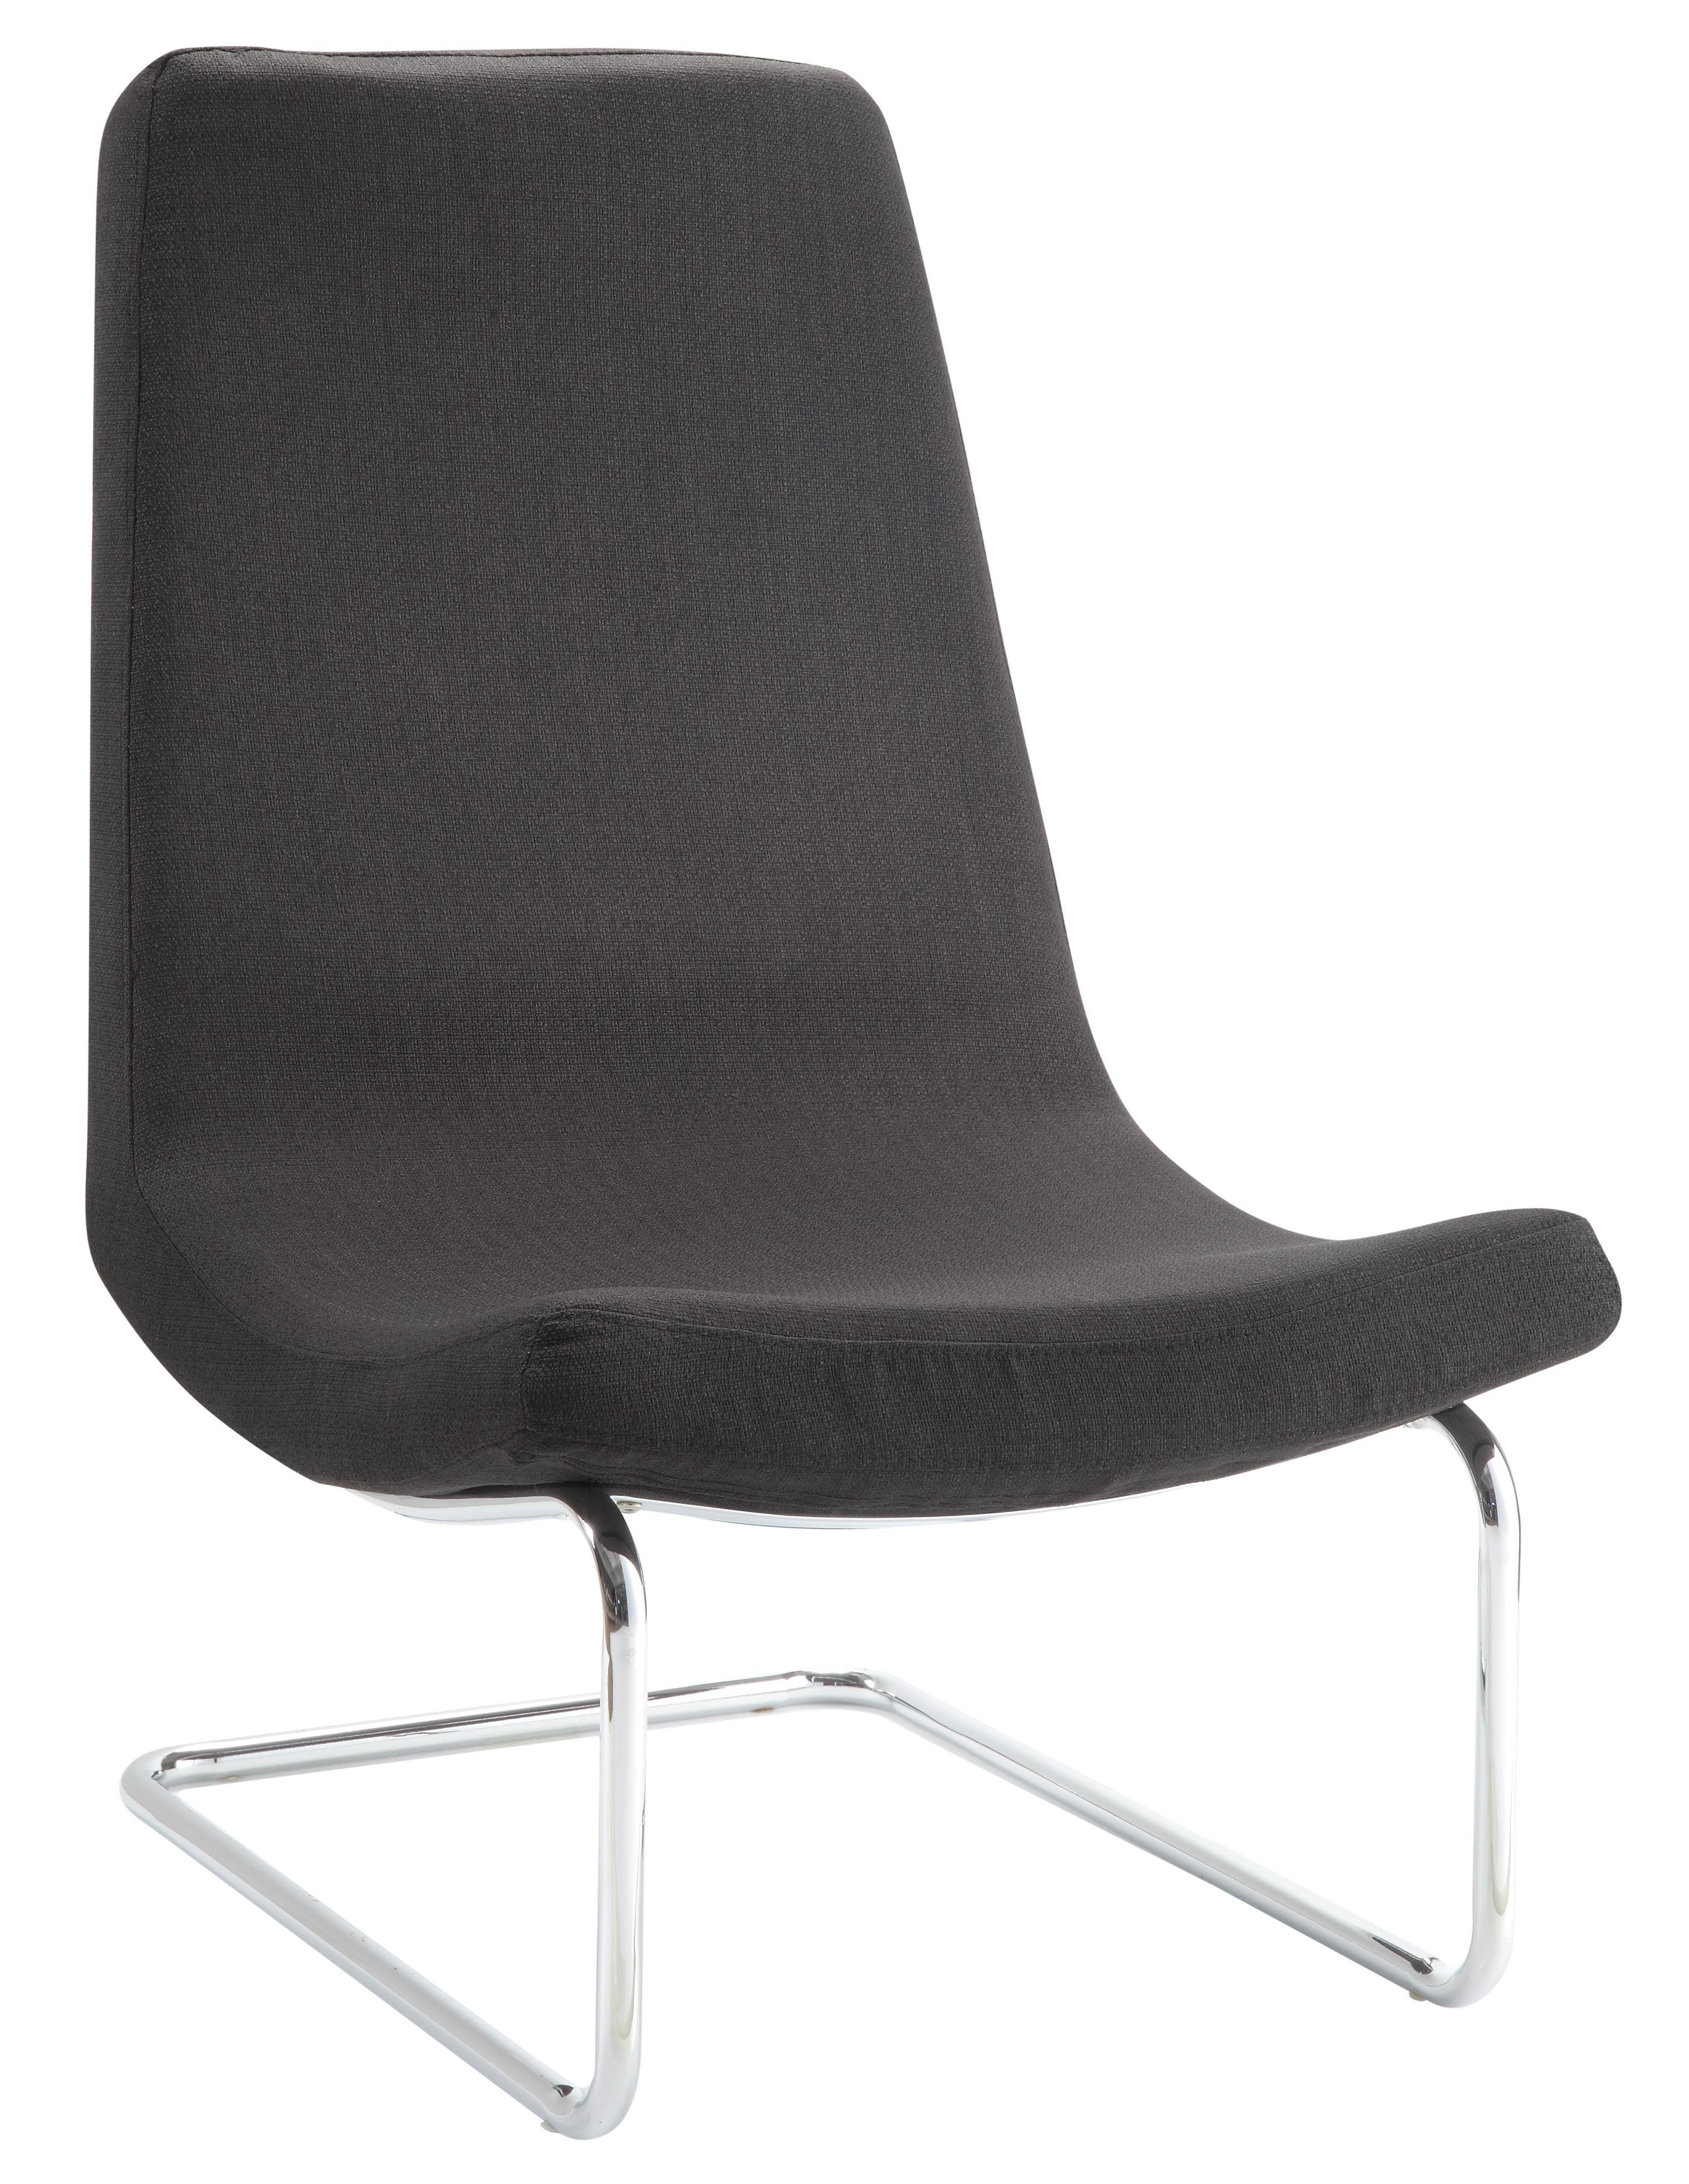 Accent Seating Modern Accent Chair With Chrome Cantilever